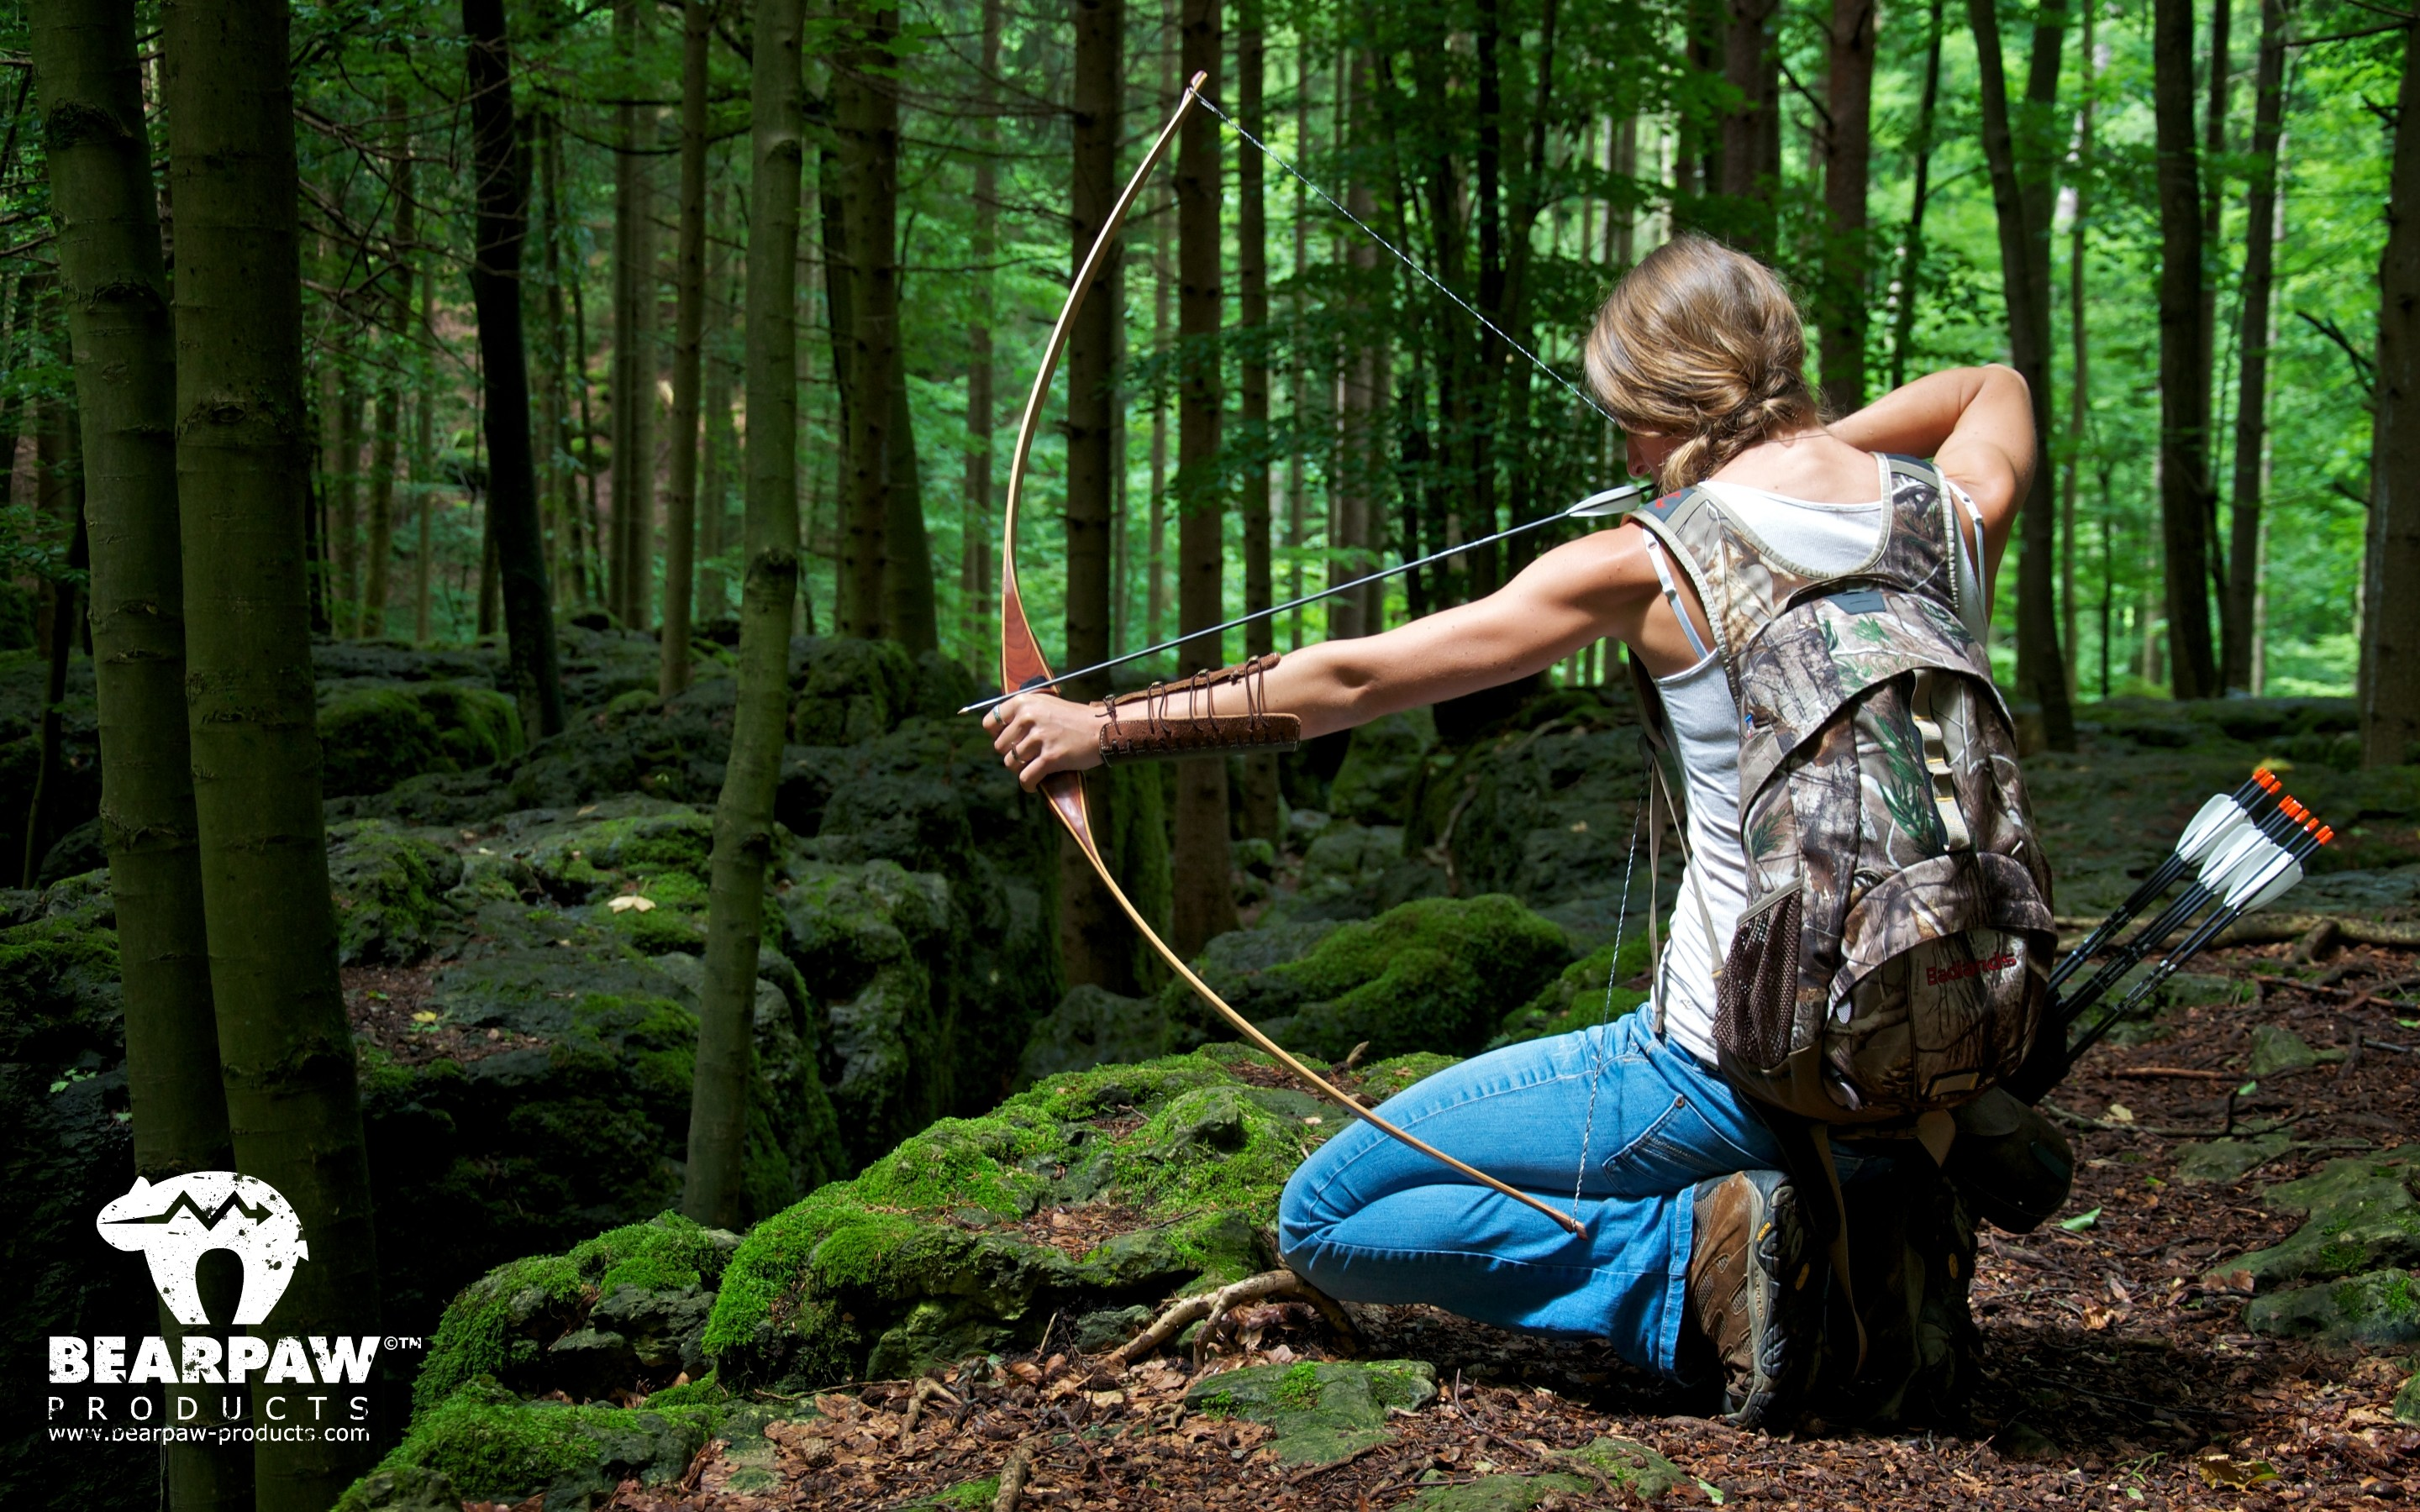 Res: 2880x1800, Archery Girl Outdoor Bearpaw Products Wallpaper .